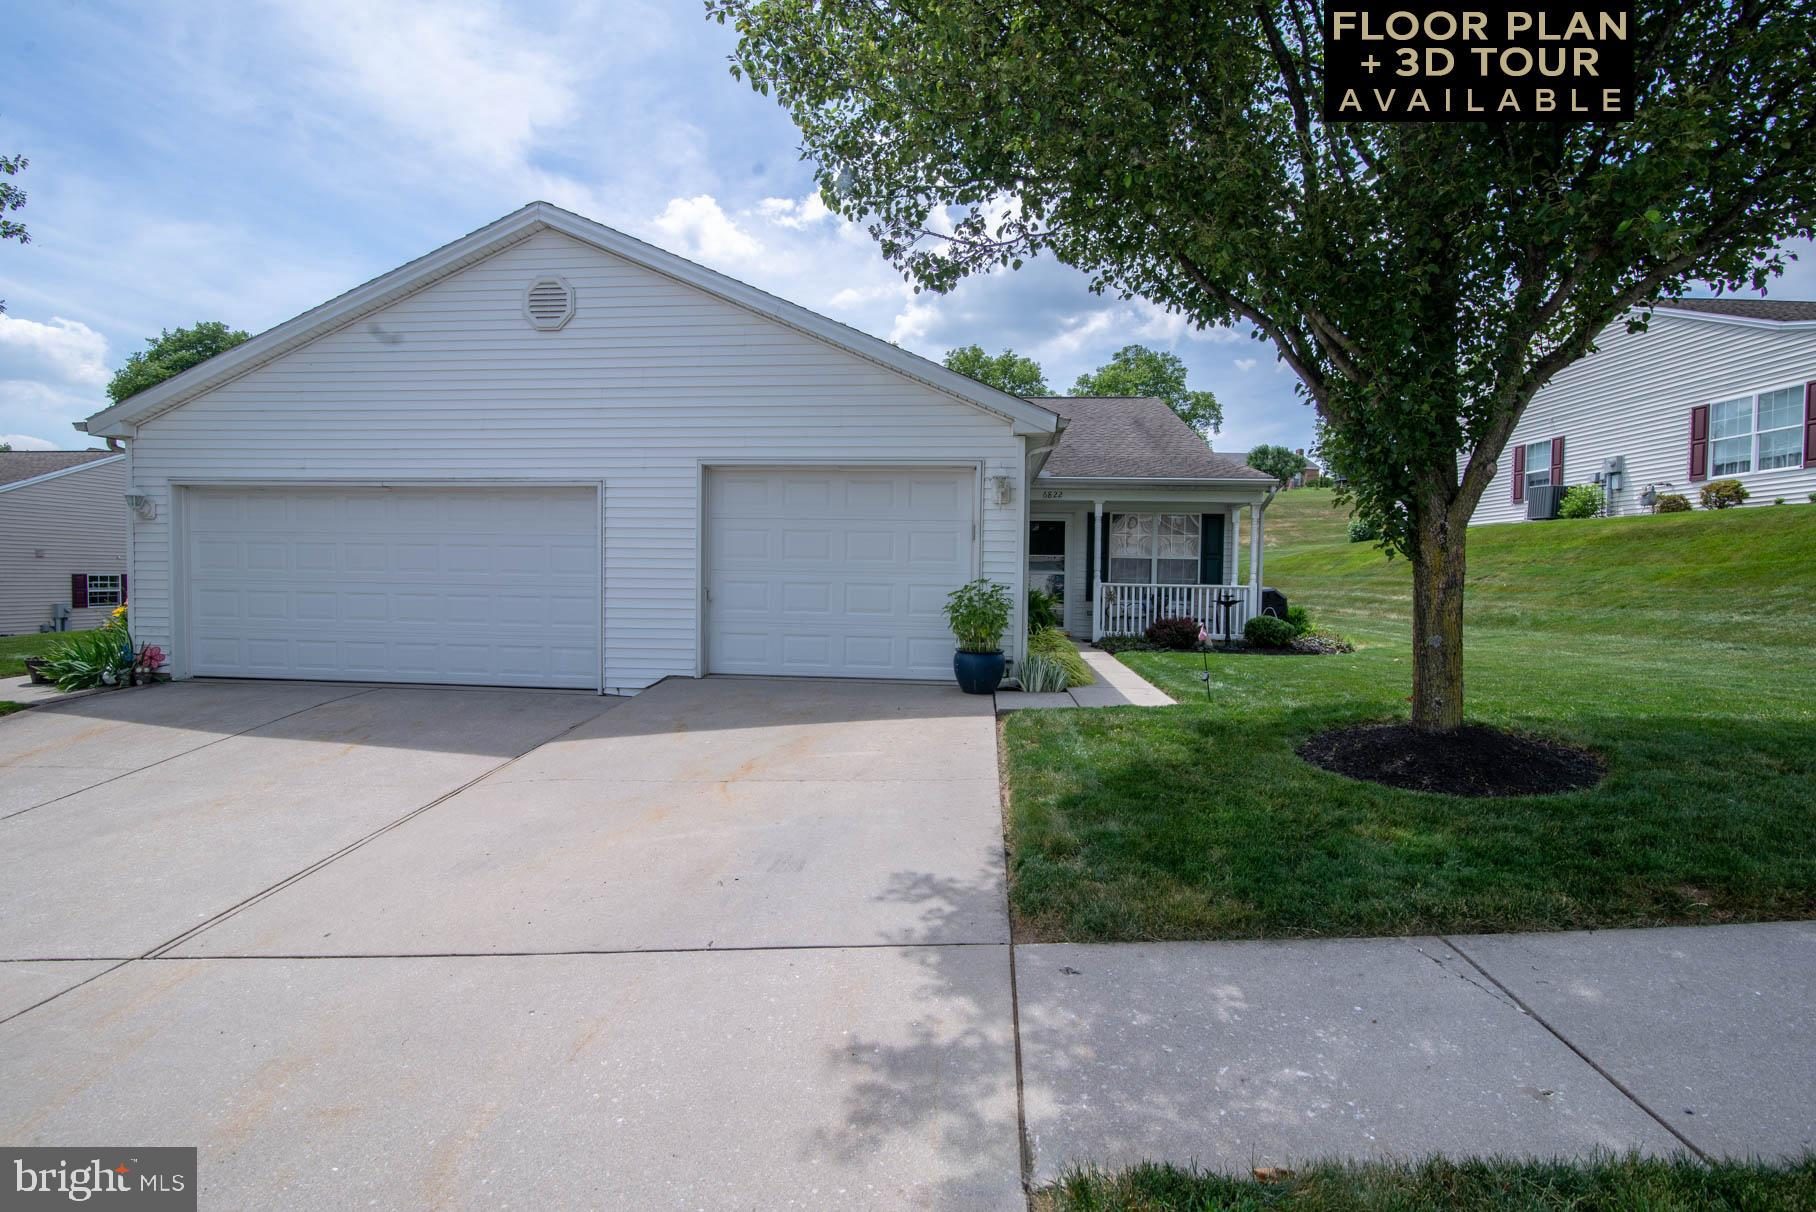 Are you ready to move?  Move right into this one-floor, 2-bedroom, all newly carpeted ranch in Seneca Ridge!  All appliances have been upgraded including a new washer and dryer.  No more climbing stairs.  You can't find better living than this!  Don't wait; this home is priced to sell.